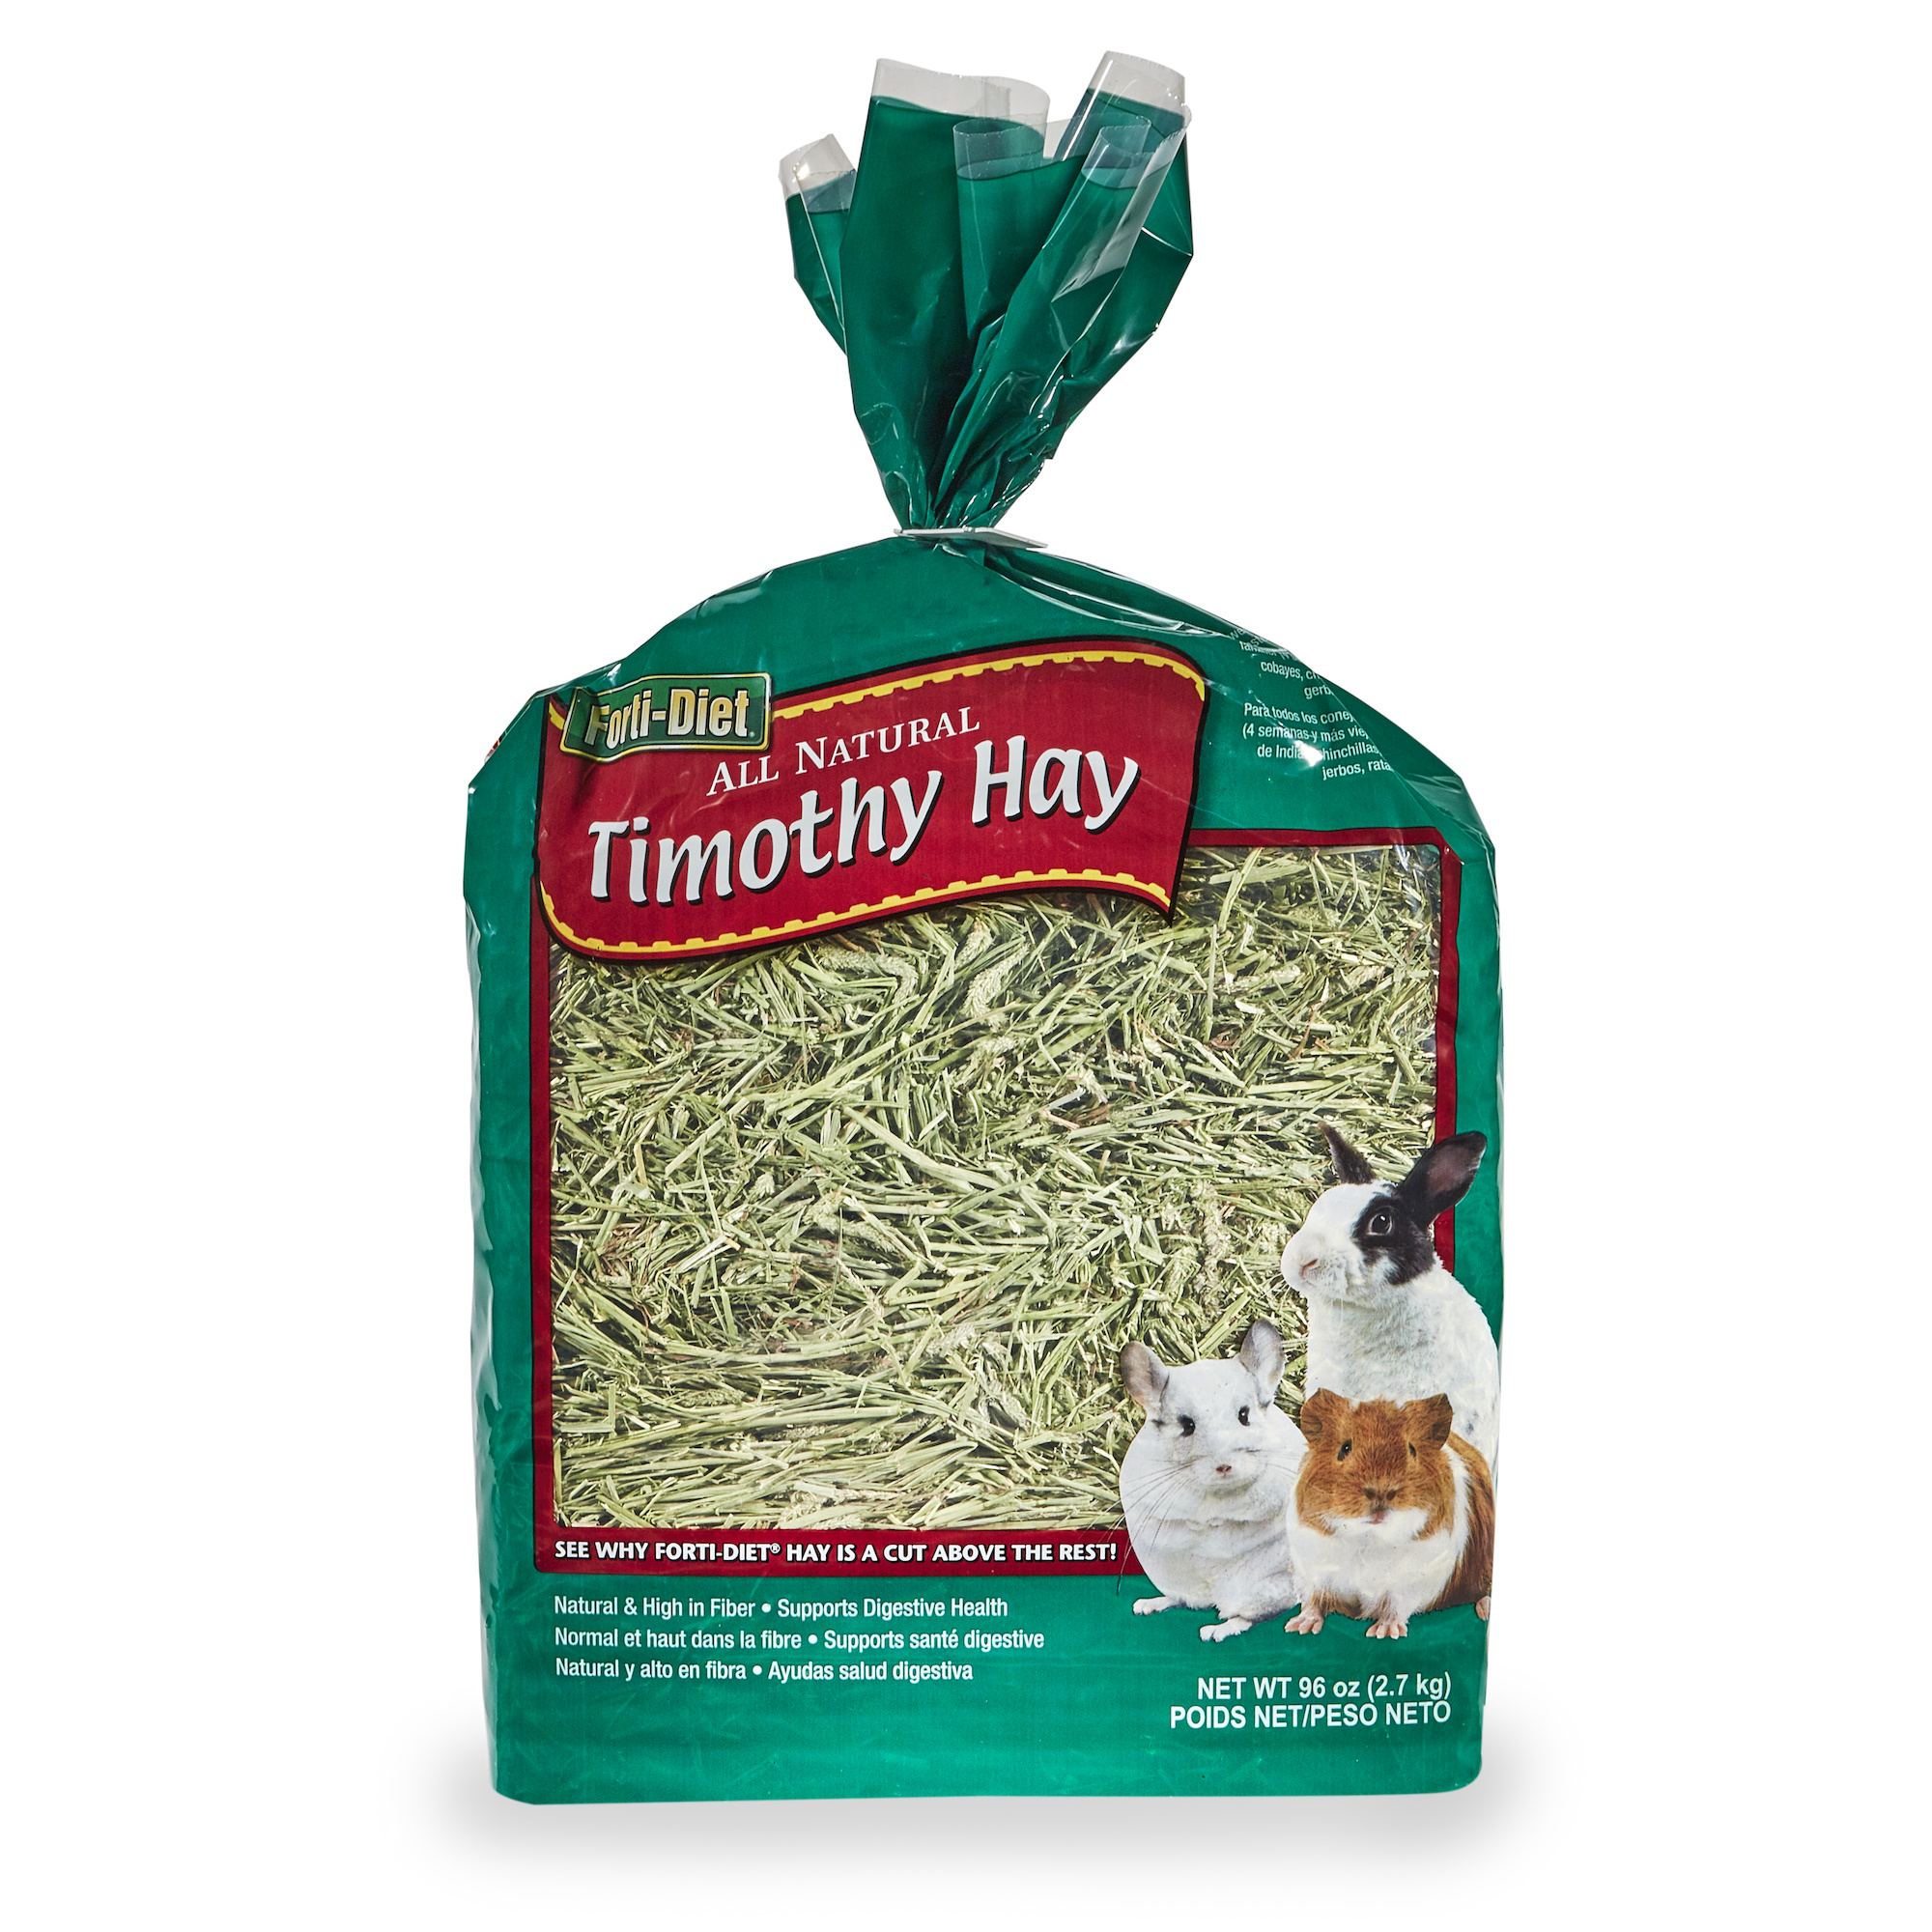 Forti-Diet Natural Timothy Hay for Small Pets Small Animal Treat and Food, 96 OZ